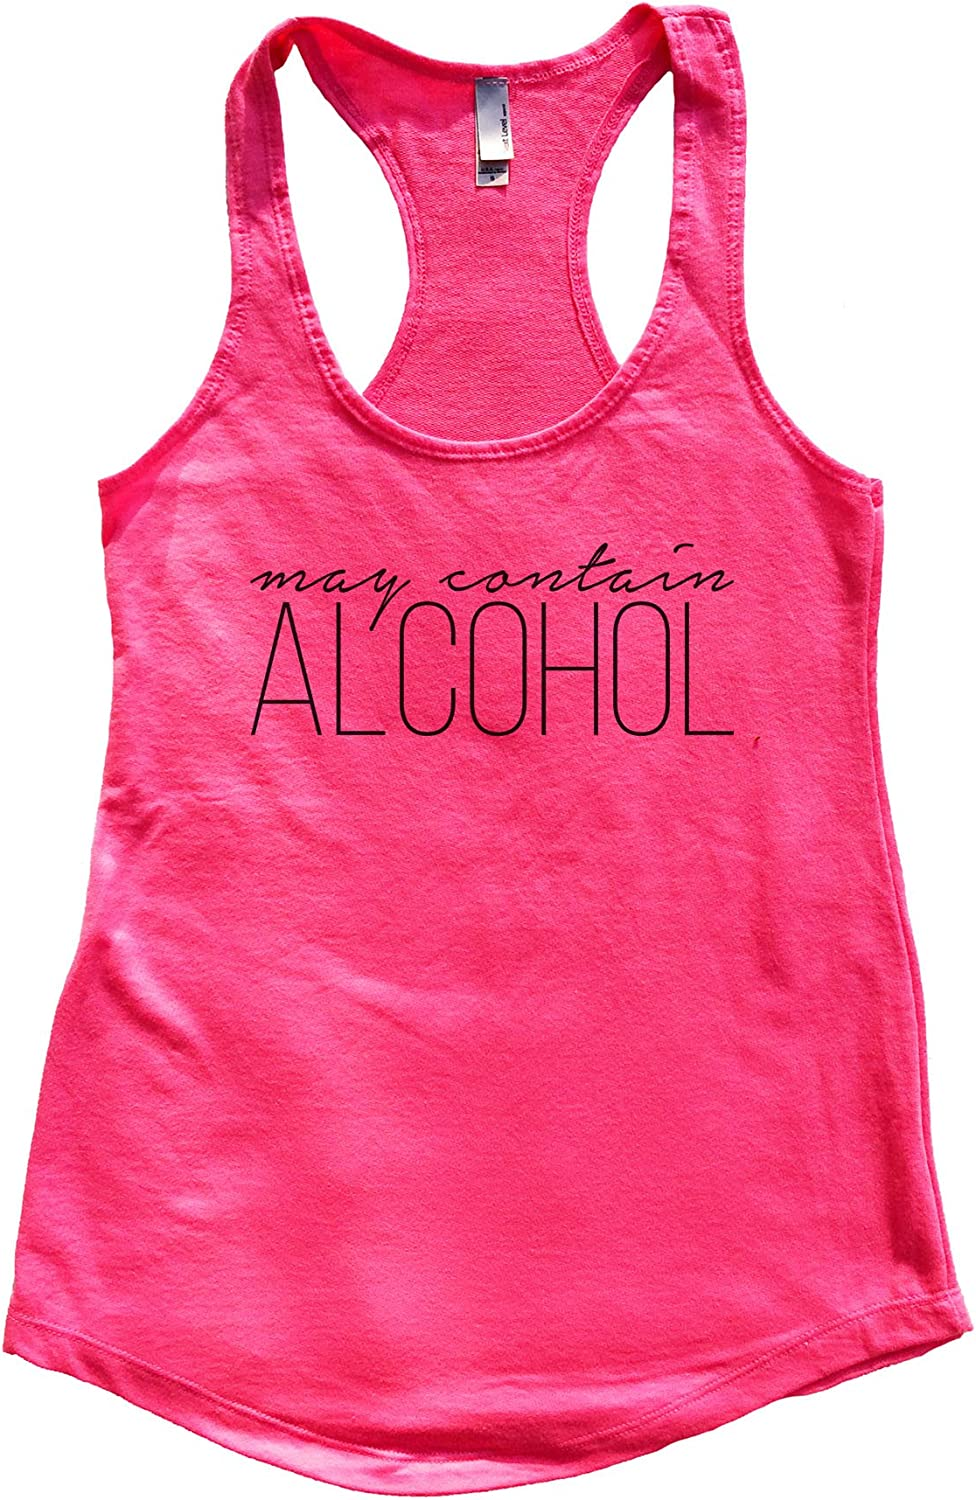 """Funny Threadz Womens Flowy Tank Top /""""May Contain Alcohol Weekend Party Tank Top"""